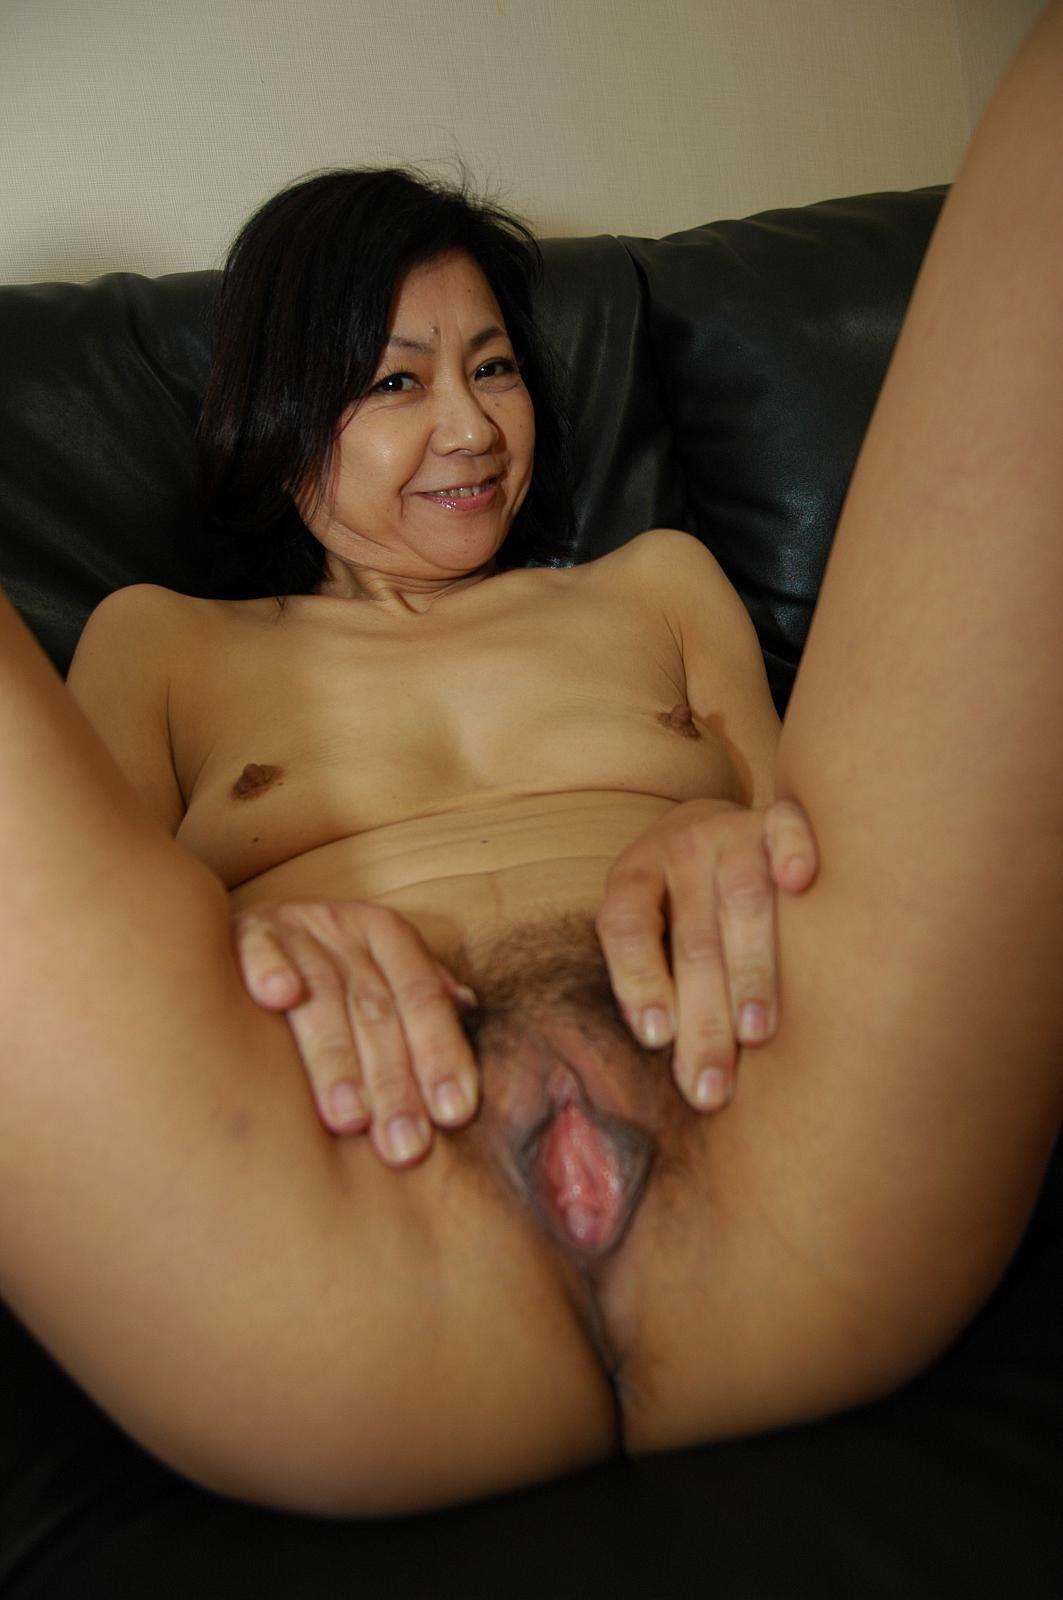 30 year old filipina milf shows her nice boobs and pussy 7